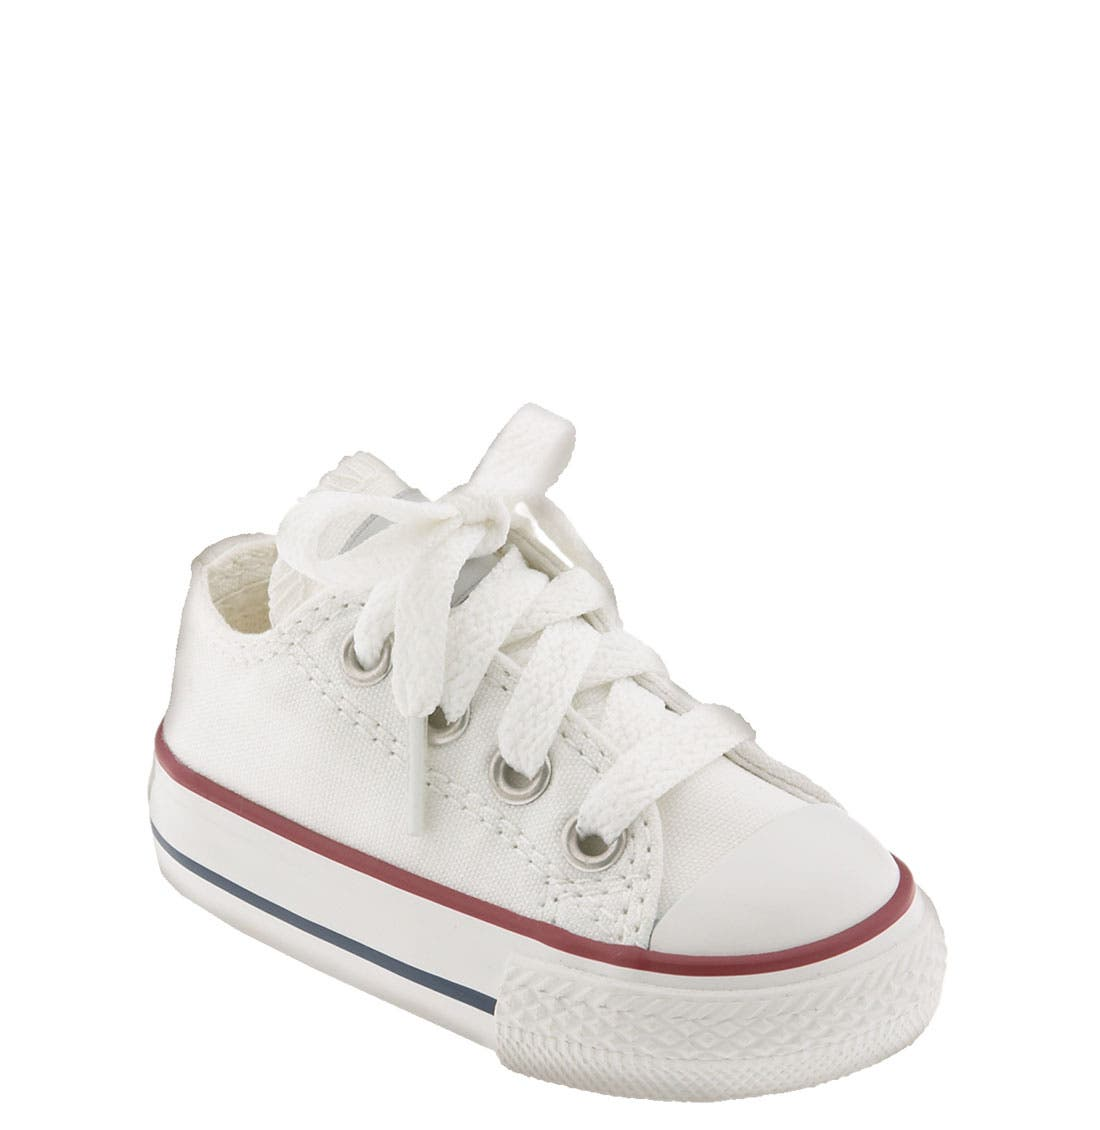 on sale a767b 540fa Baby, Walker   Toddler Shoes   Nordstrom